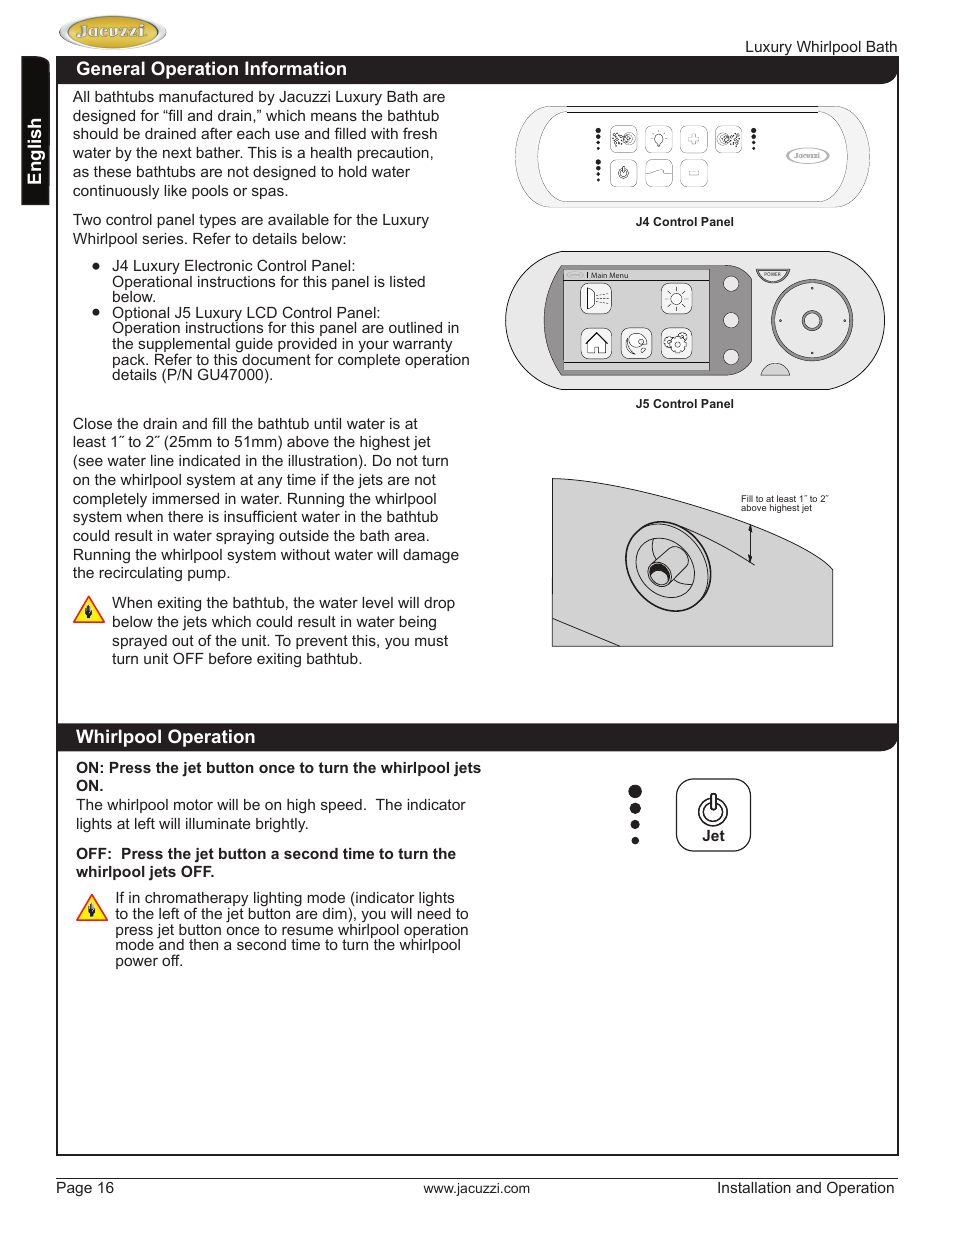 Jacuzzi HD84000 User Manual | Page 16 / 72